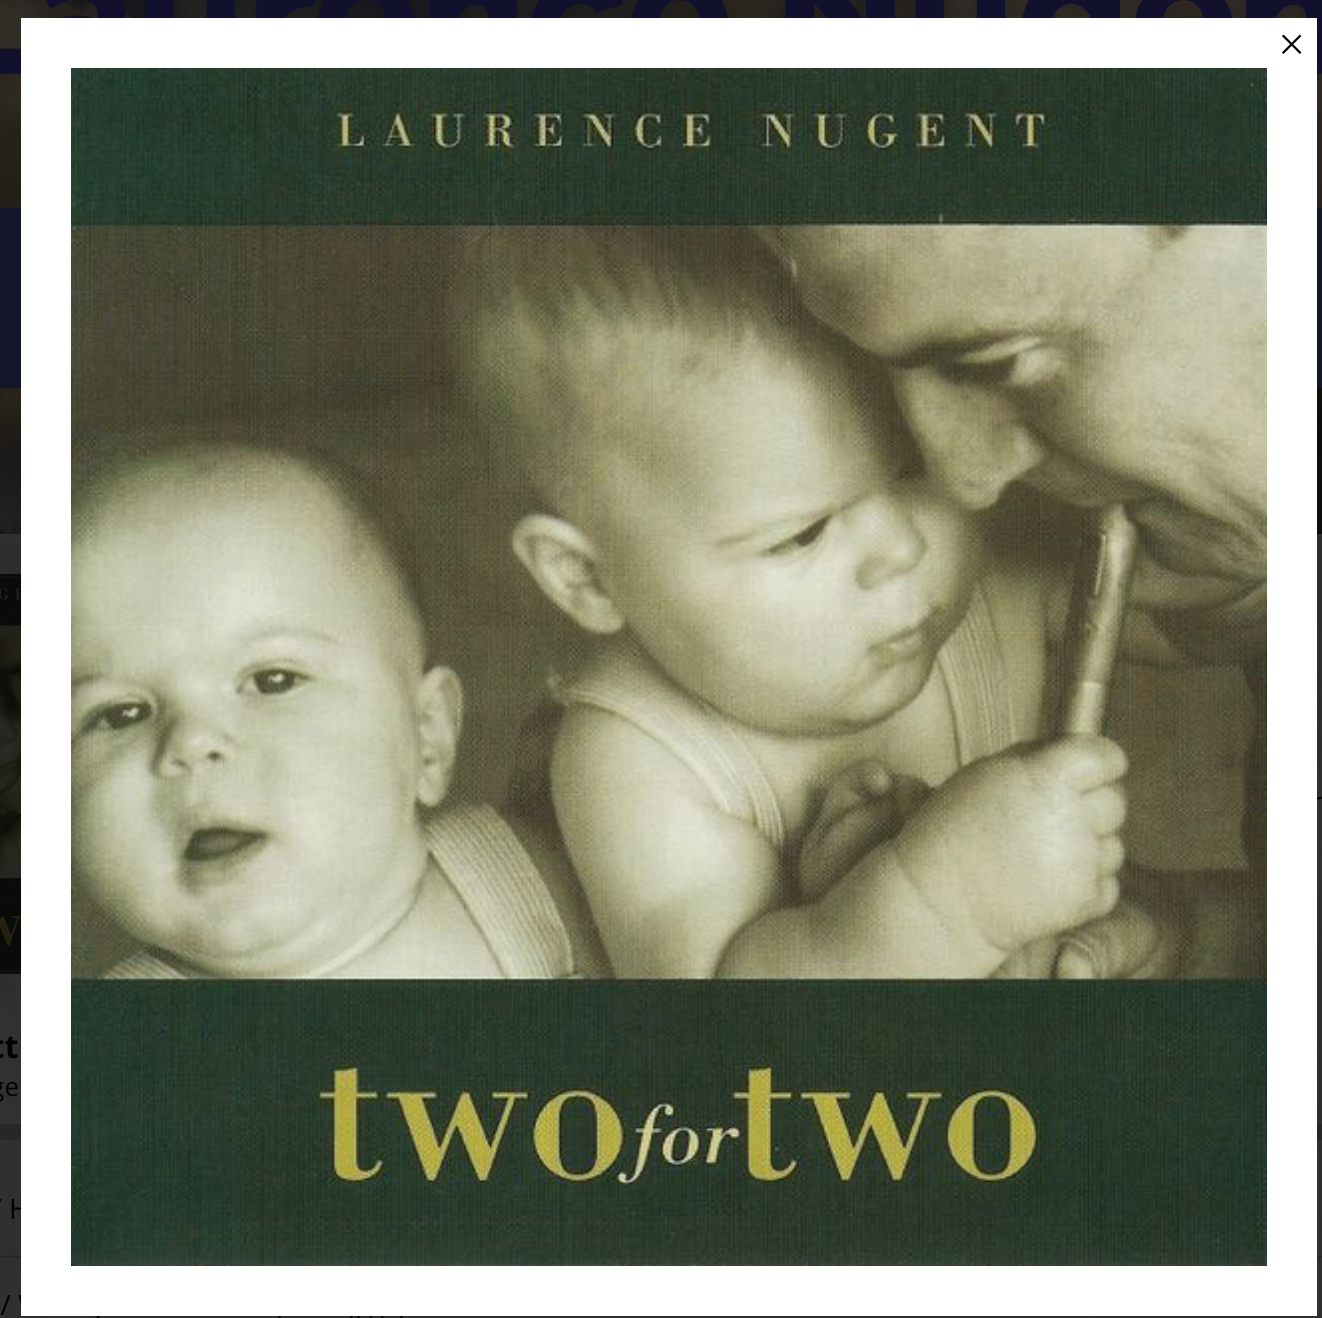 Laurence Nugent Two for Two